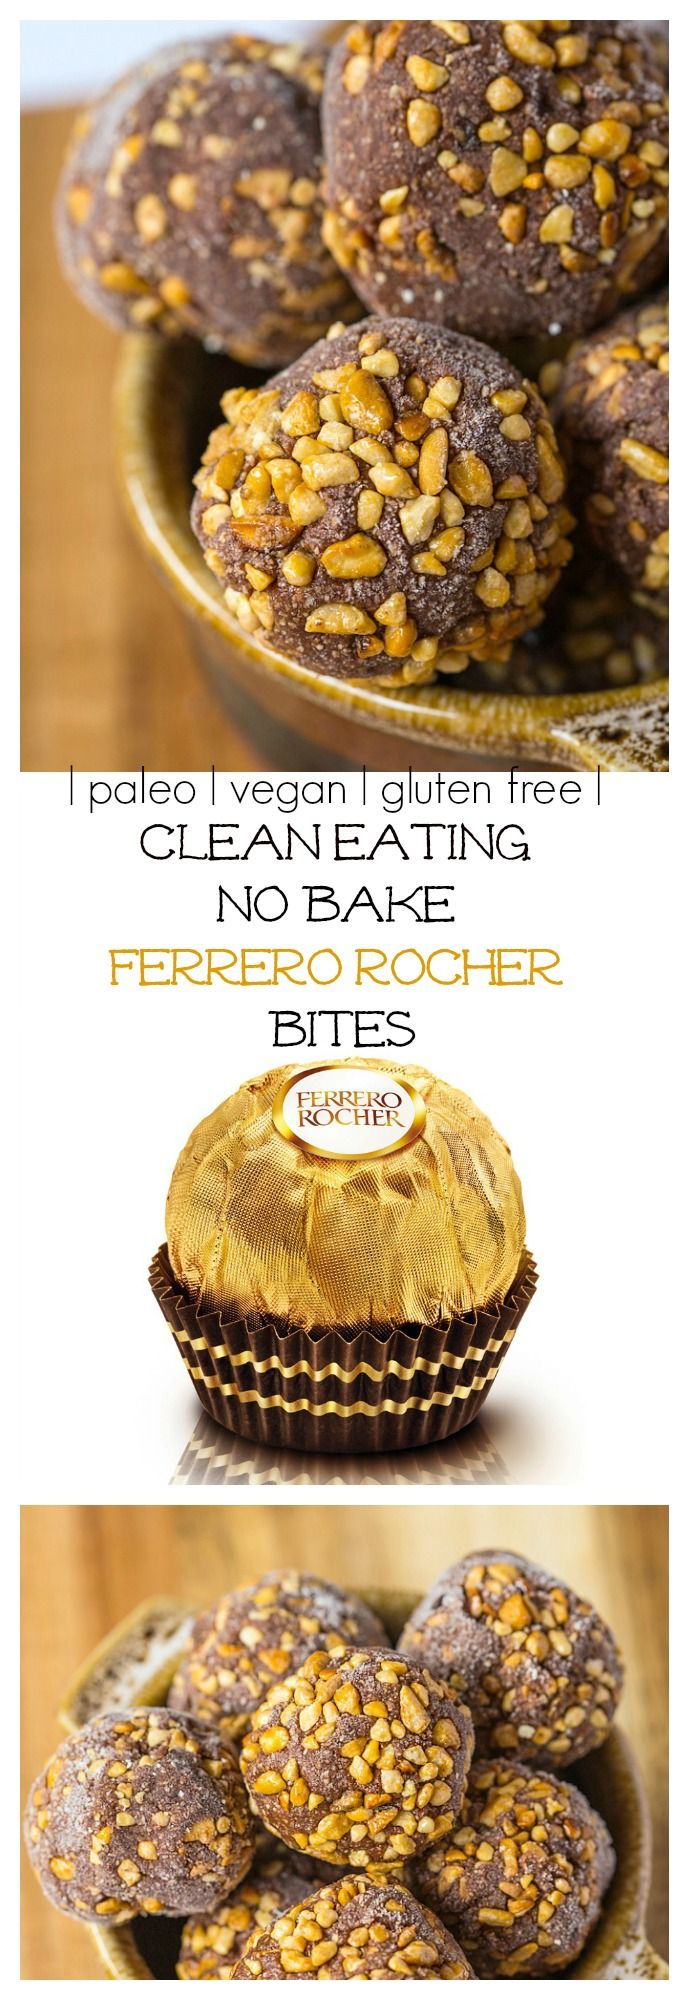 Ferrero Rocher get a healthy (no) bake-over! Just 10 minutes and you've got a healthy sinfully nutritious snack which tastes just like the original! {gluten free, vegan + paleo option}-thebigmansworld.com